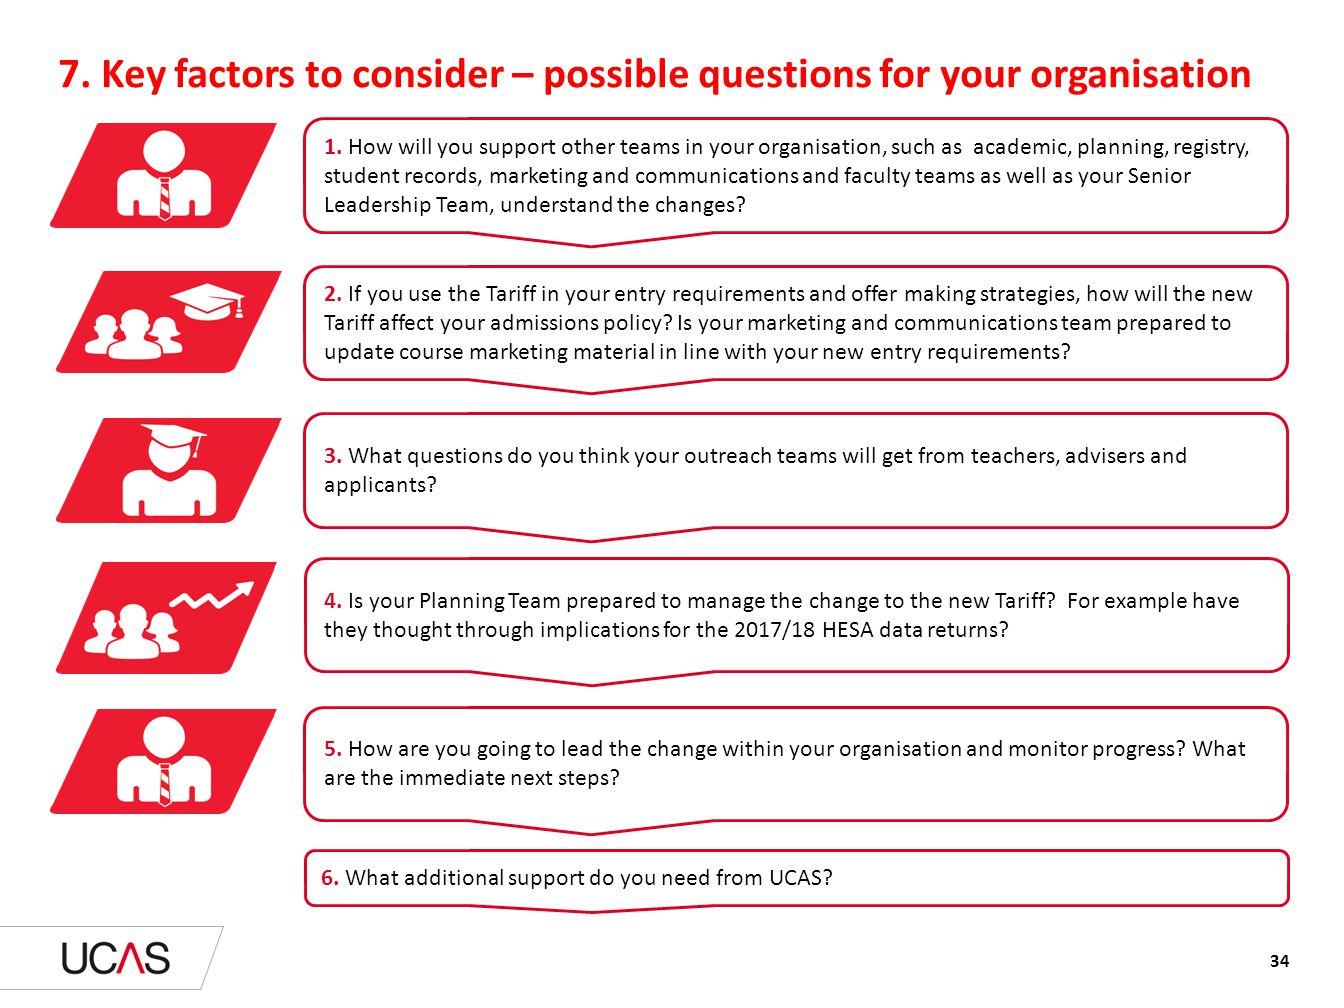 7. Key factors to consider – possible questions for your organisation